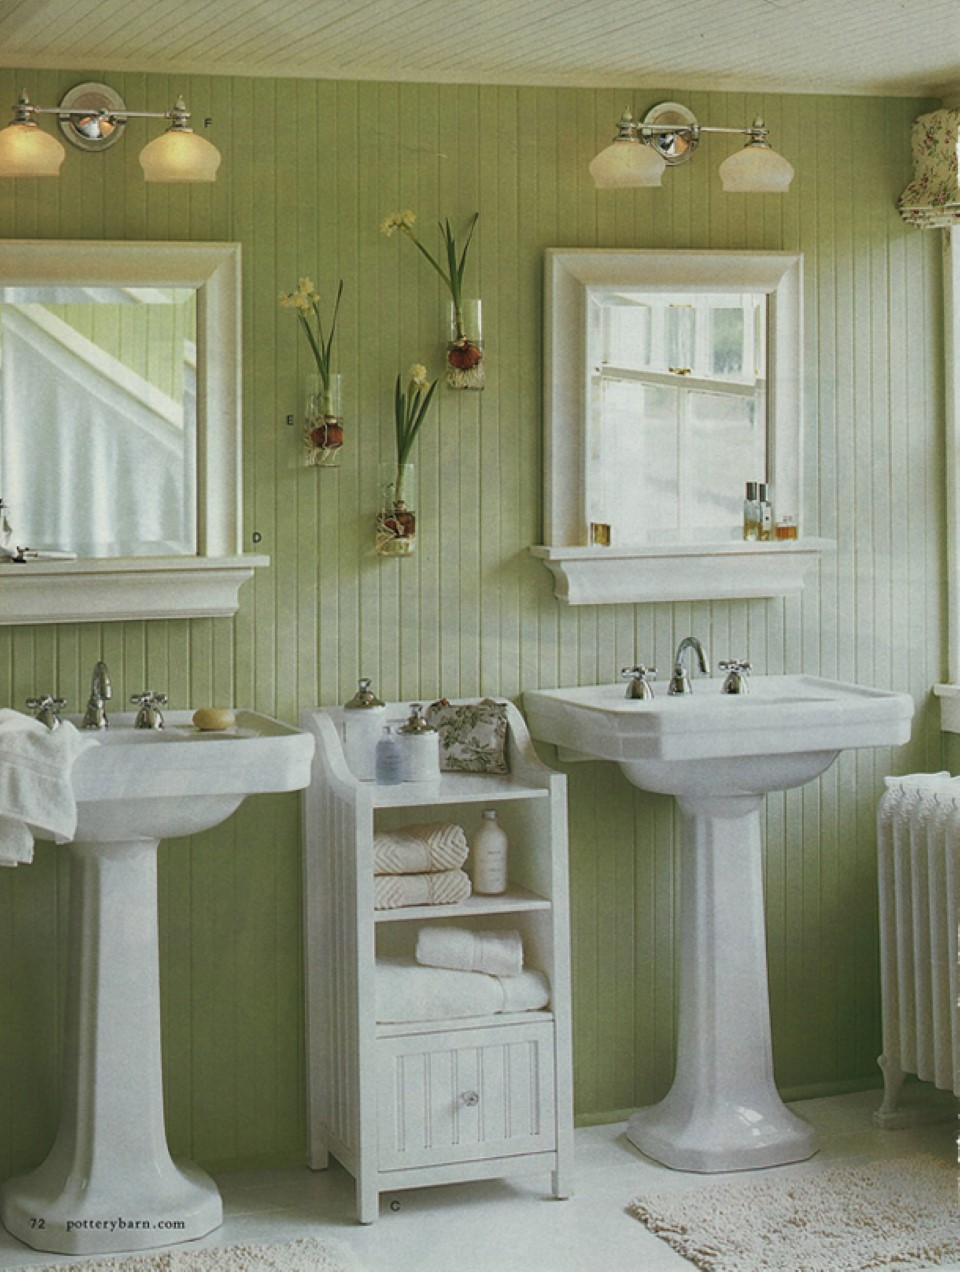 Perfect bathroom color trend for 2016 homesfeed for White bathrooms 2016